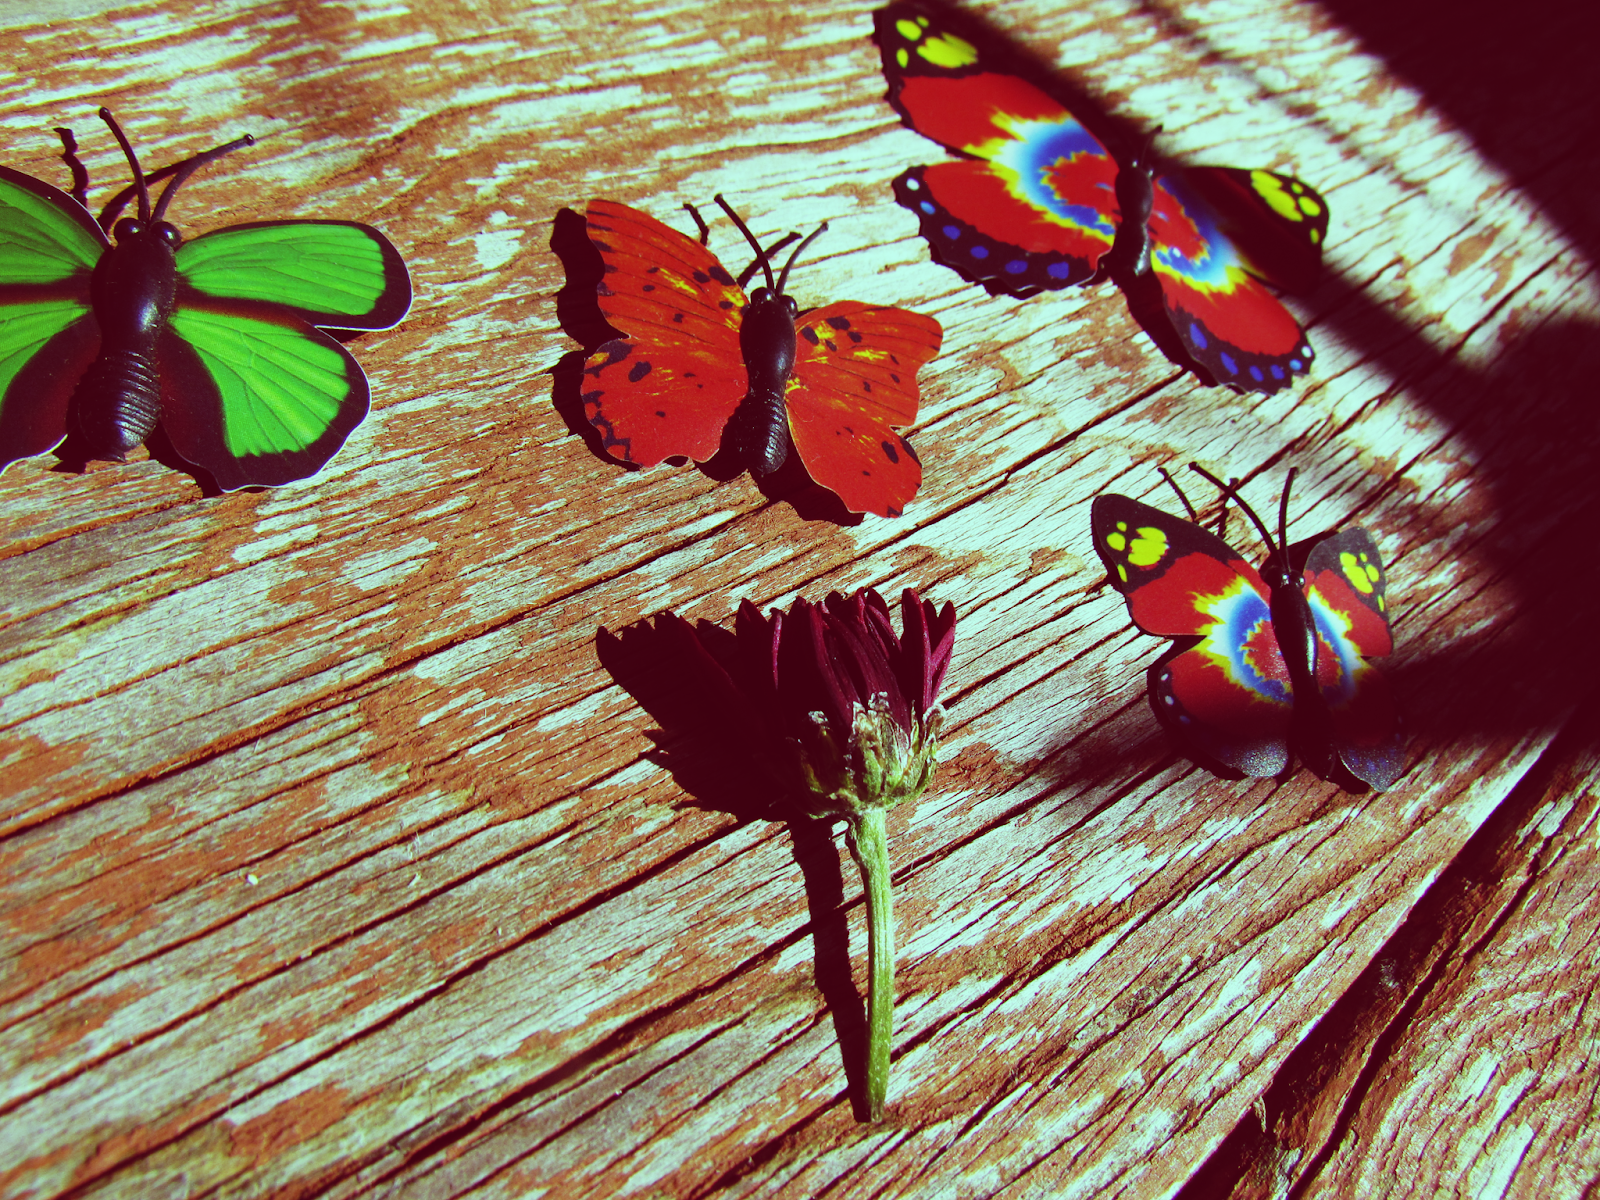 Butterfly and Plant Life Nature Art Flat Lay and Nature Inspiration